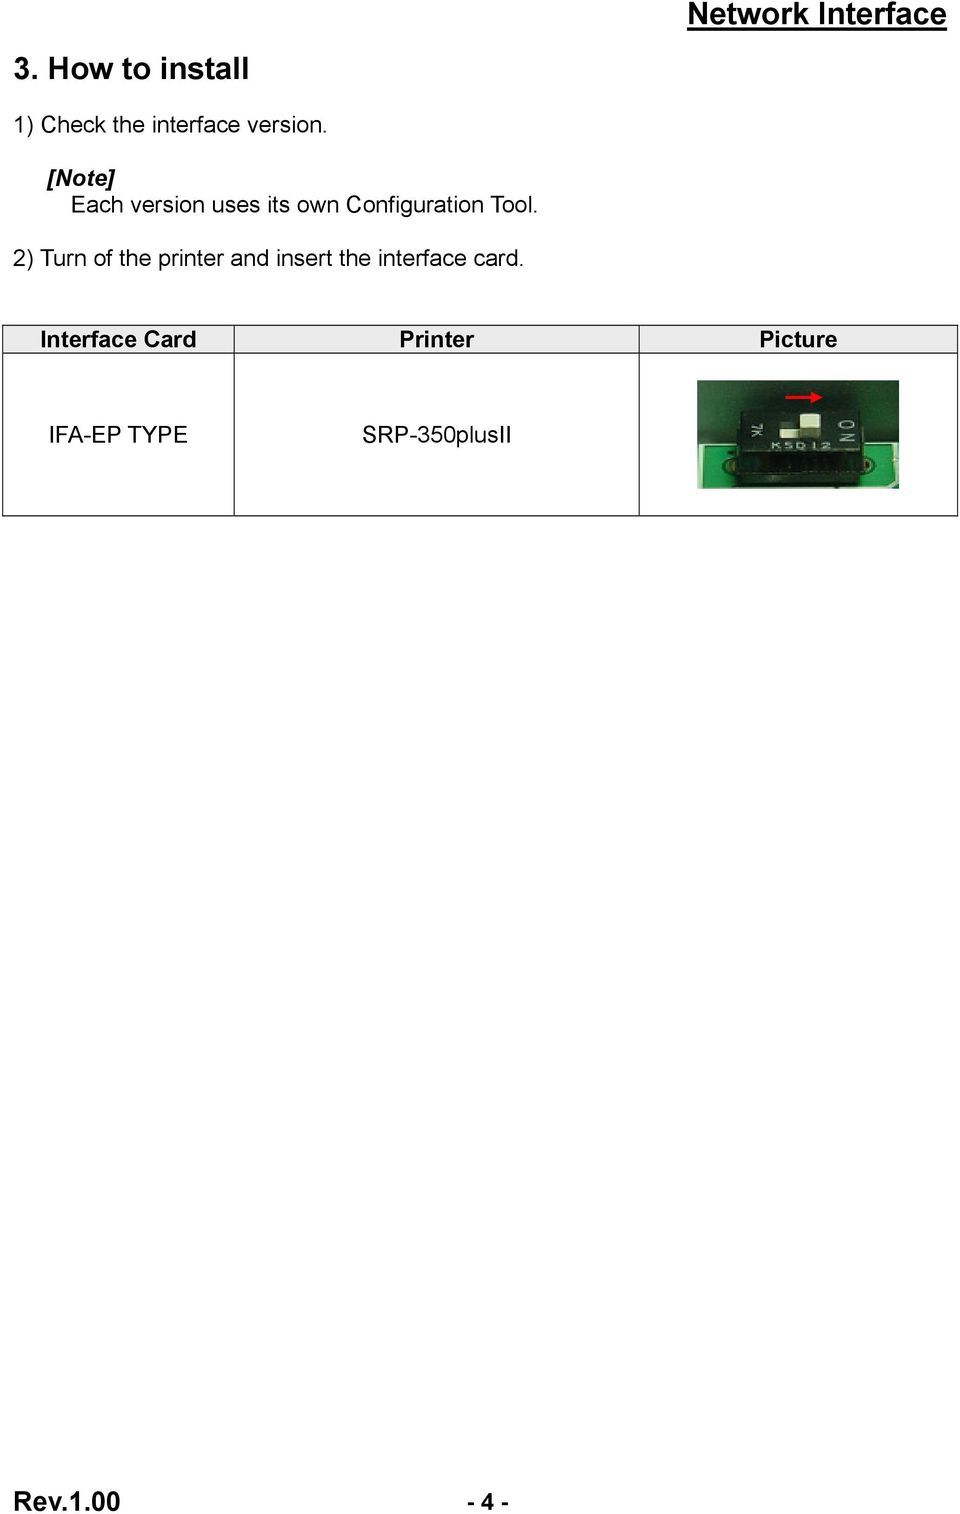 2) Turn of the printer and insert the interface card.